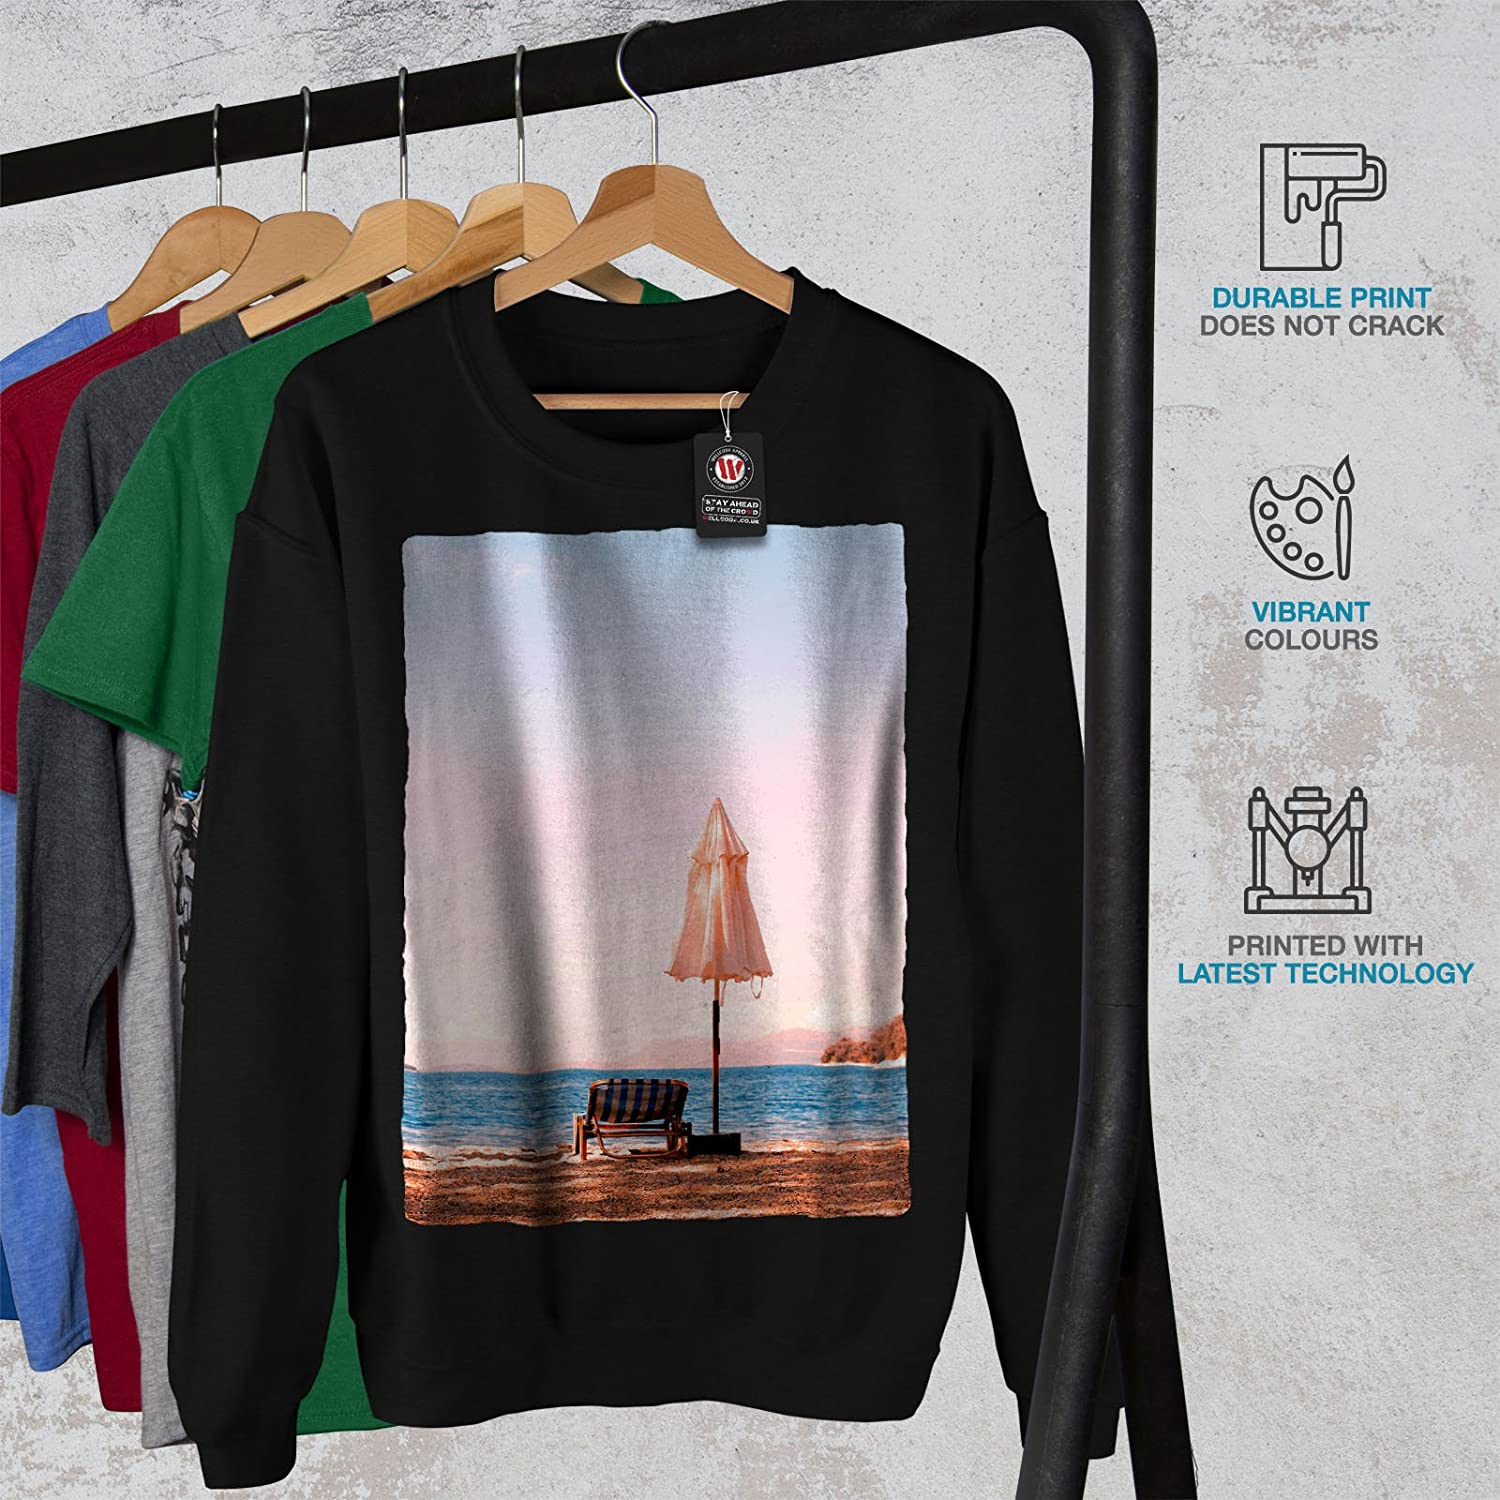 wellcoda Landscape Sea Sun Mens Sweatshirt Summertime Casual Jumper